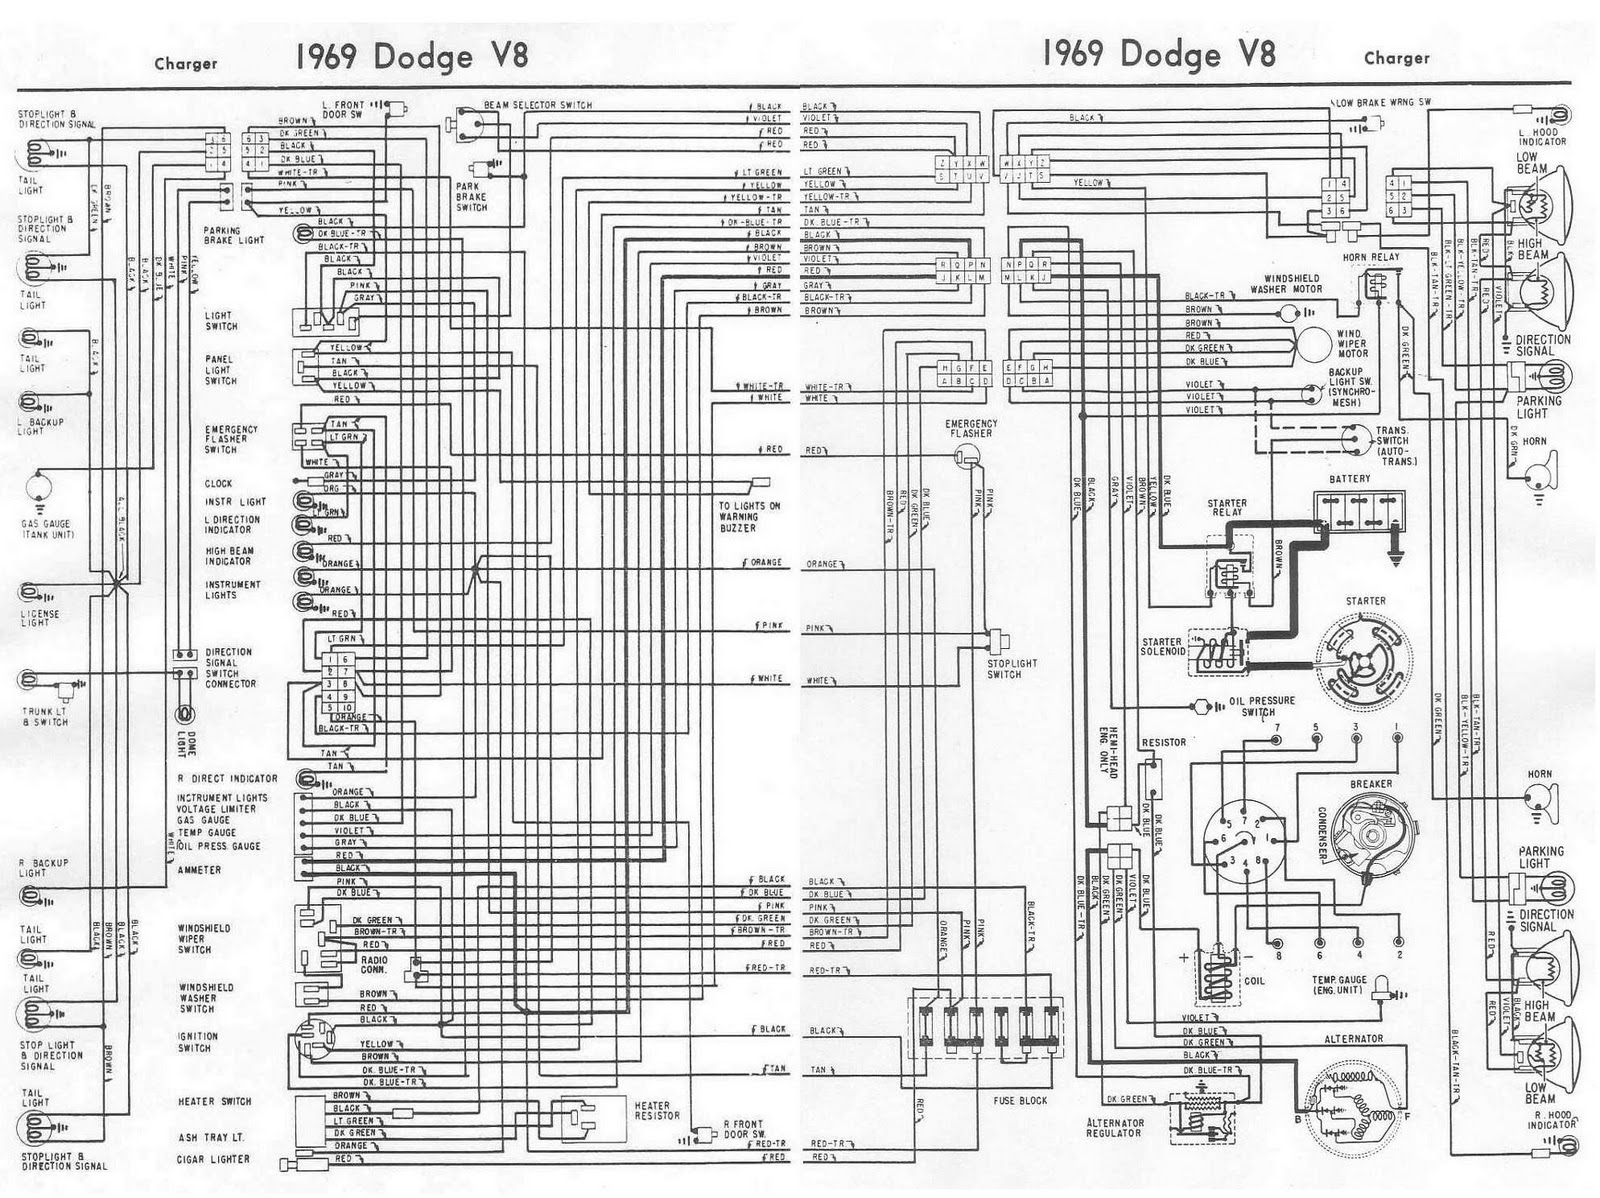 1973 dodge charger ignition wiring diagram 2007 f150 1969 v8 complete electrical